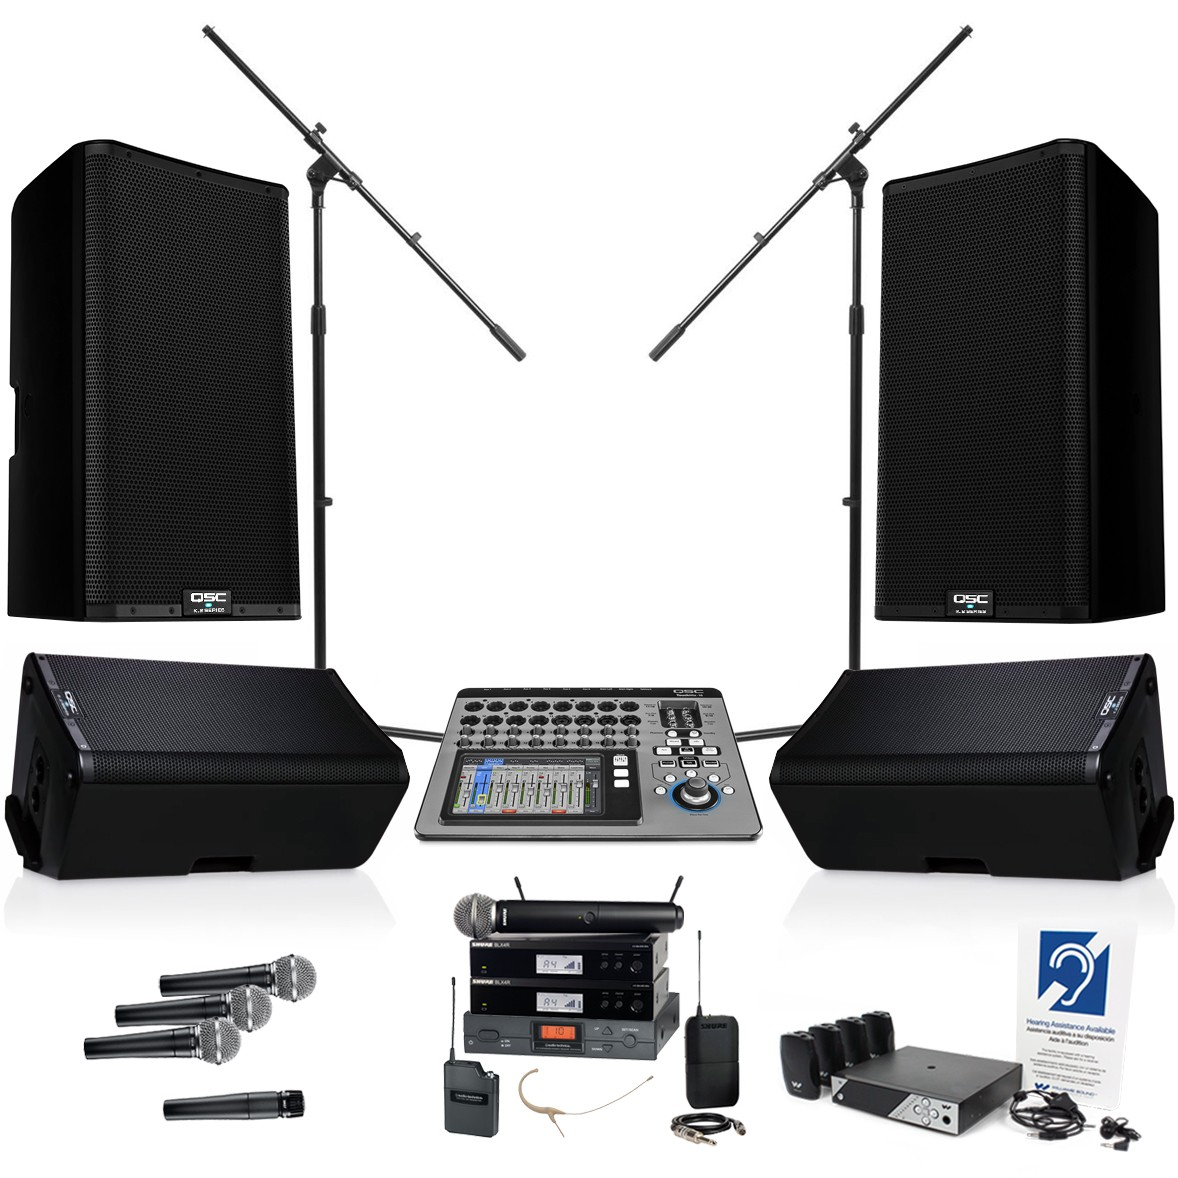 qsc audio church sound system with k12 2 and k10 2 loudspeakers and digital mixer. Black Bedroom Furniture Sets. Home Design Ideas